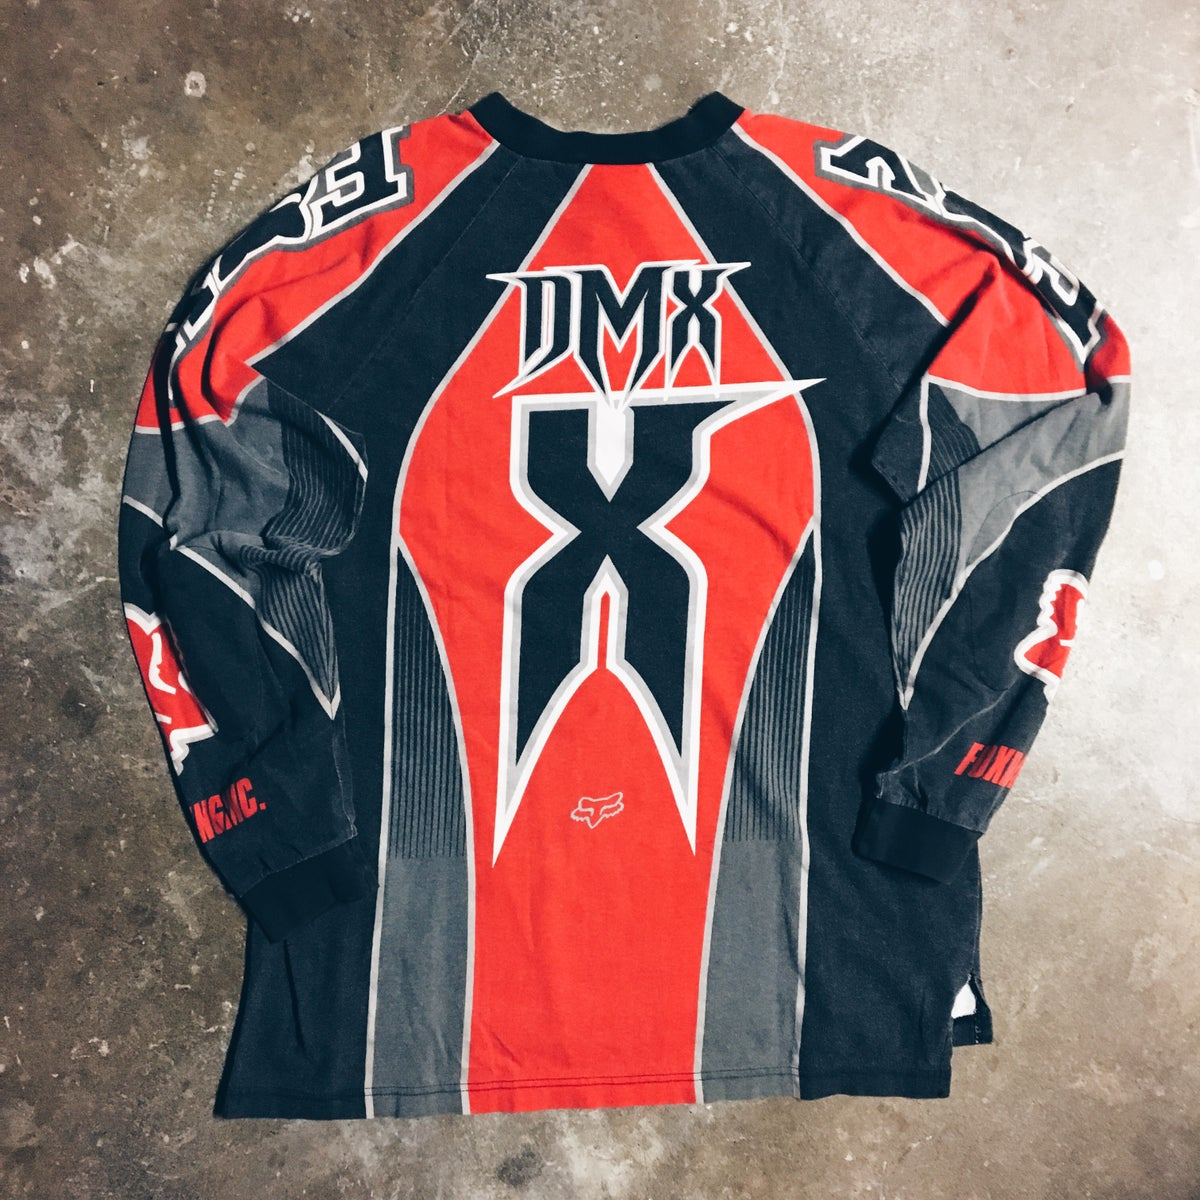 Image of Original 2000 Ruff Ryders DMX Fox Racing Jersey.